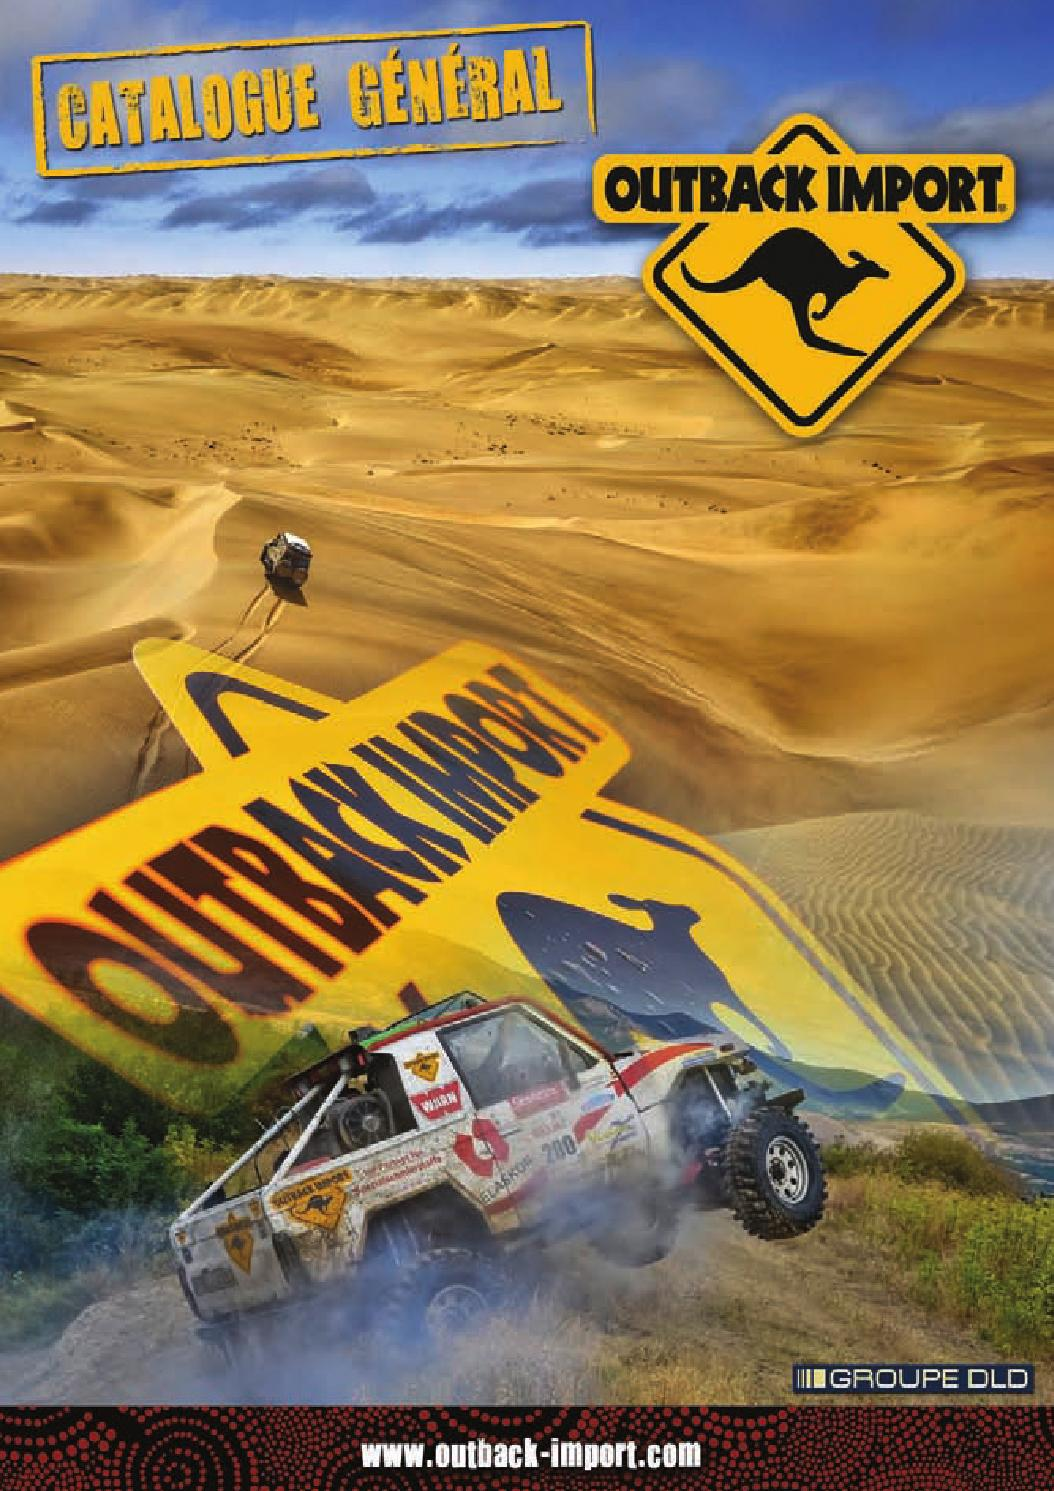 Catalogue General Outback Import By Outbackimport Issuu